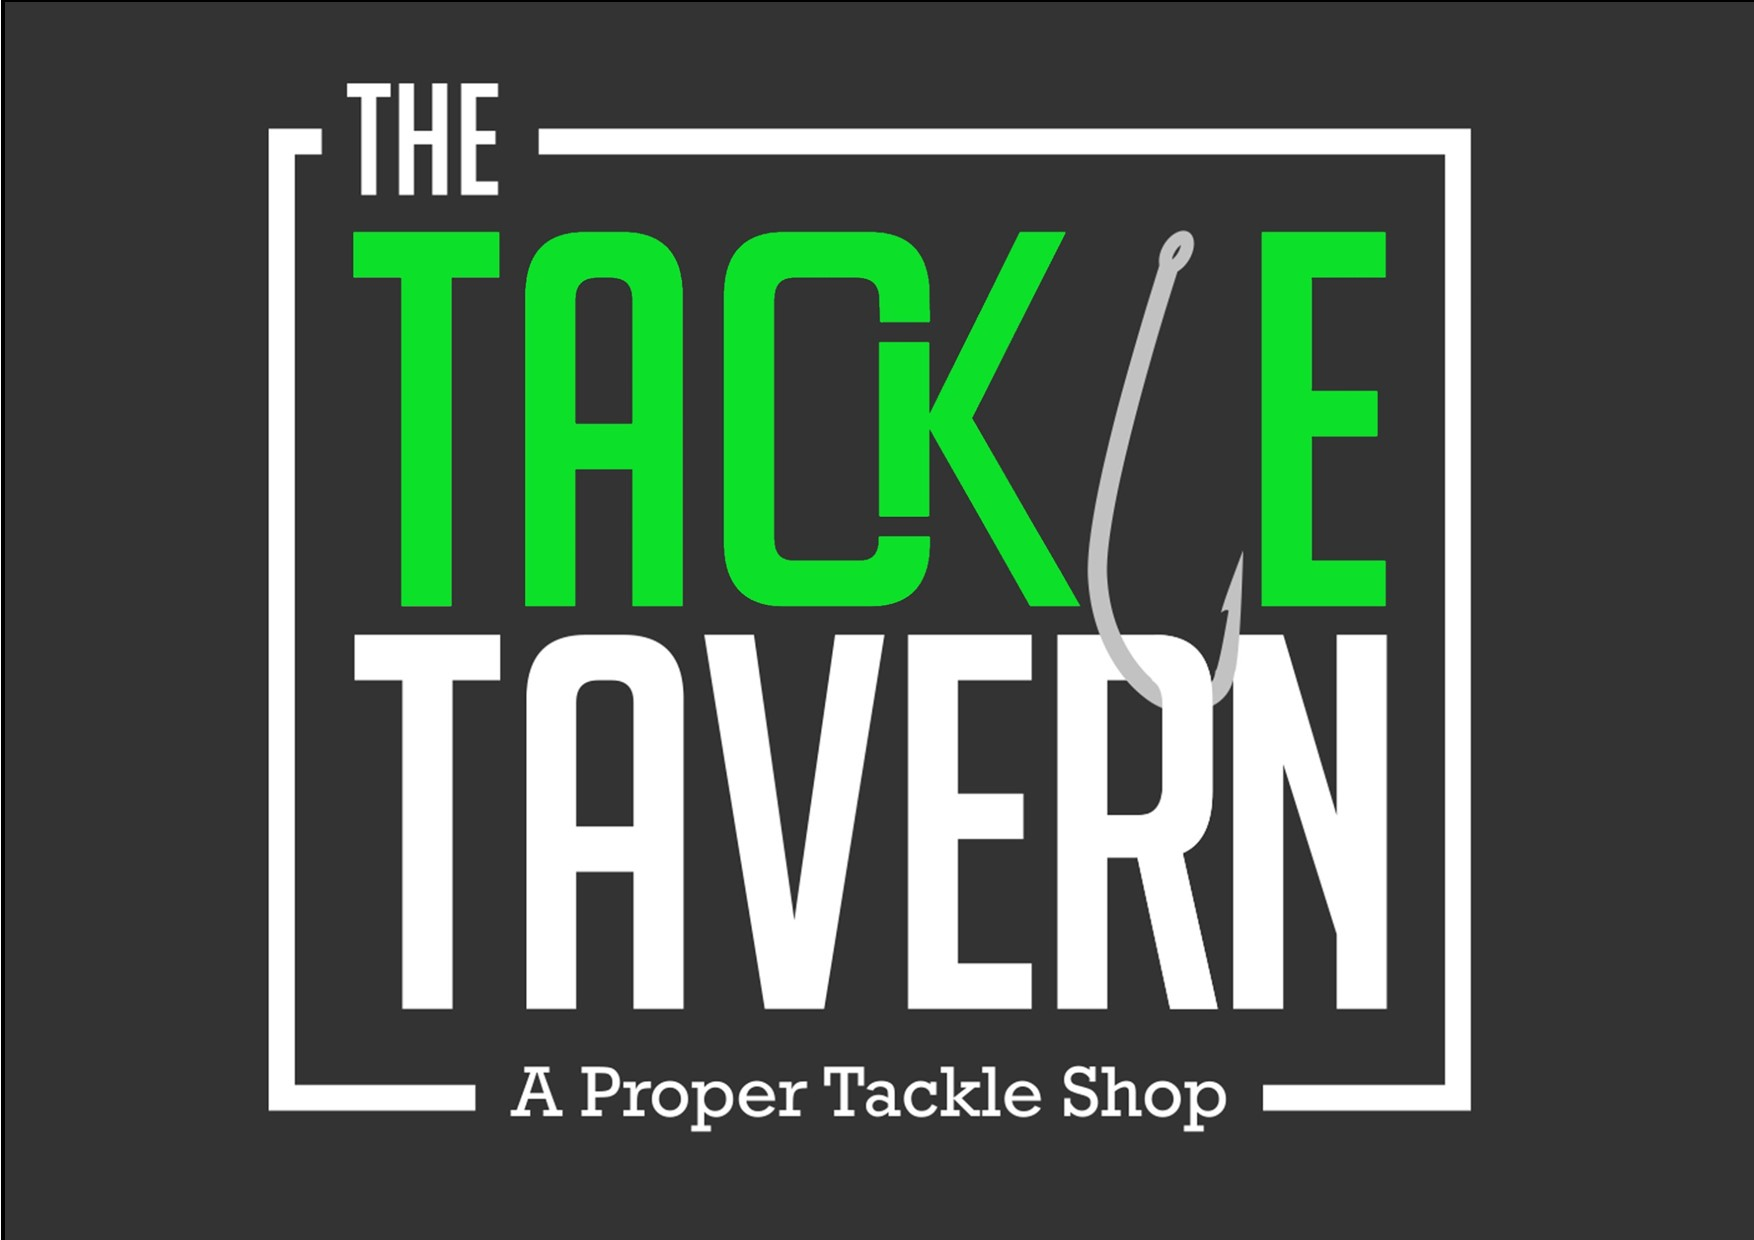 The Tackle Tavern Store